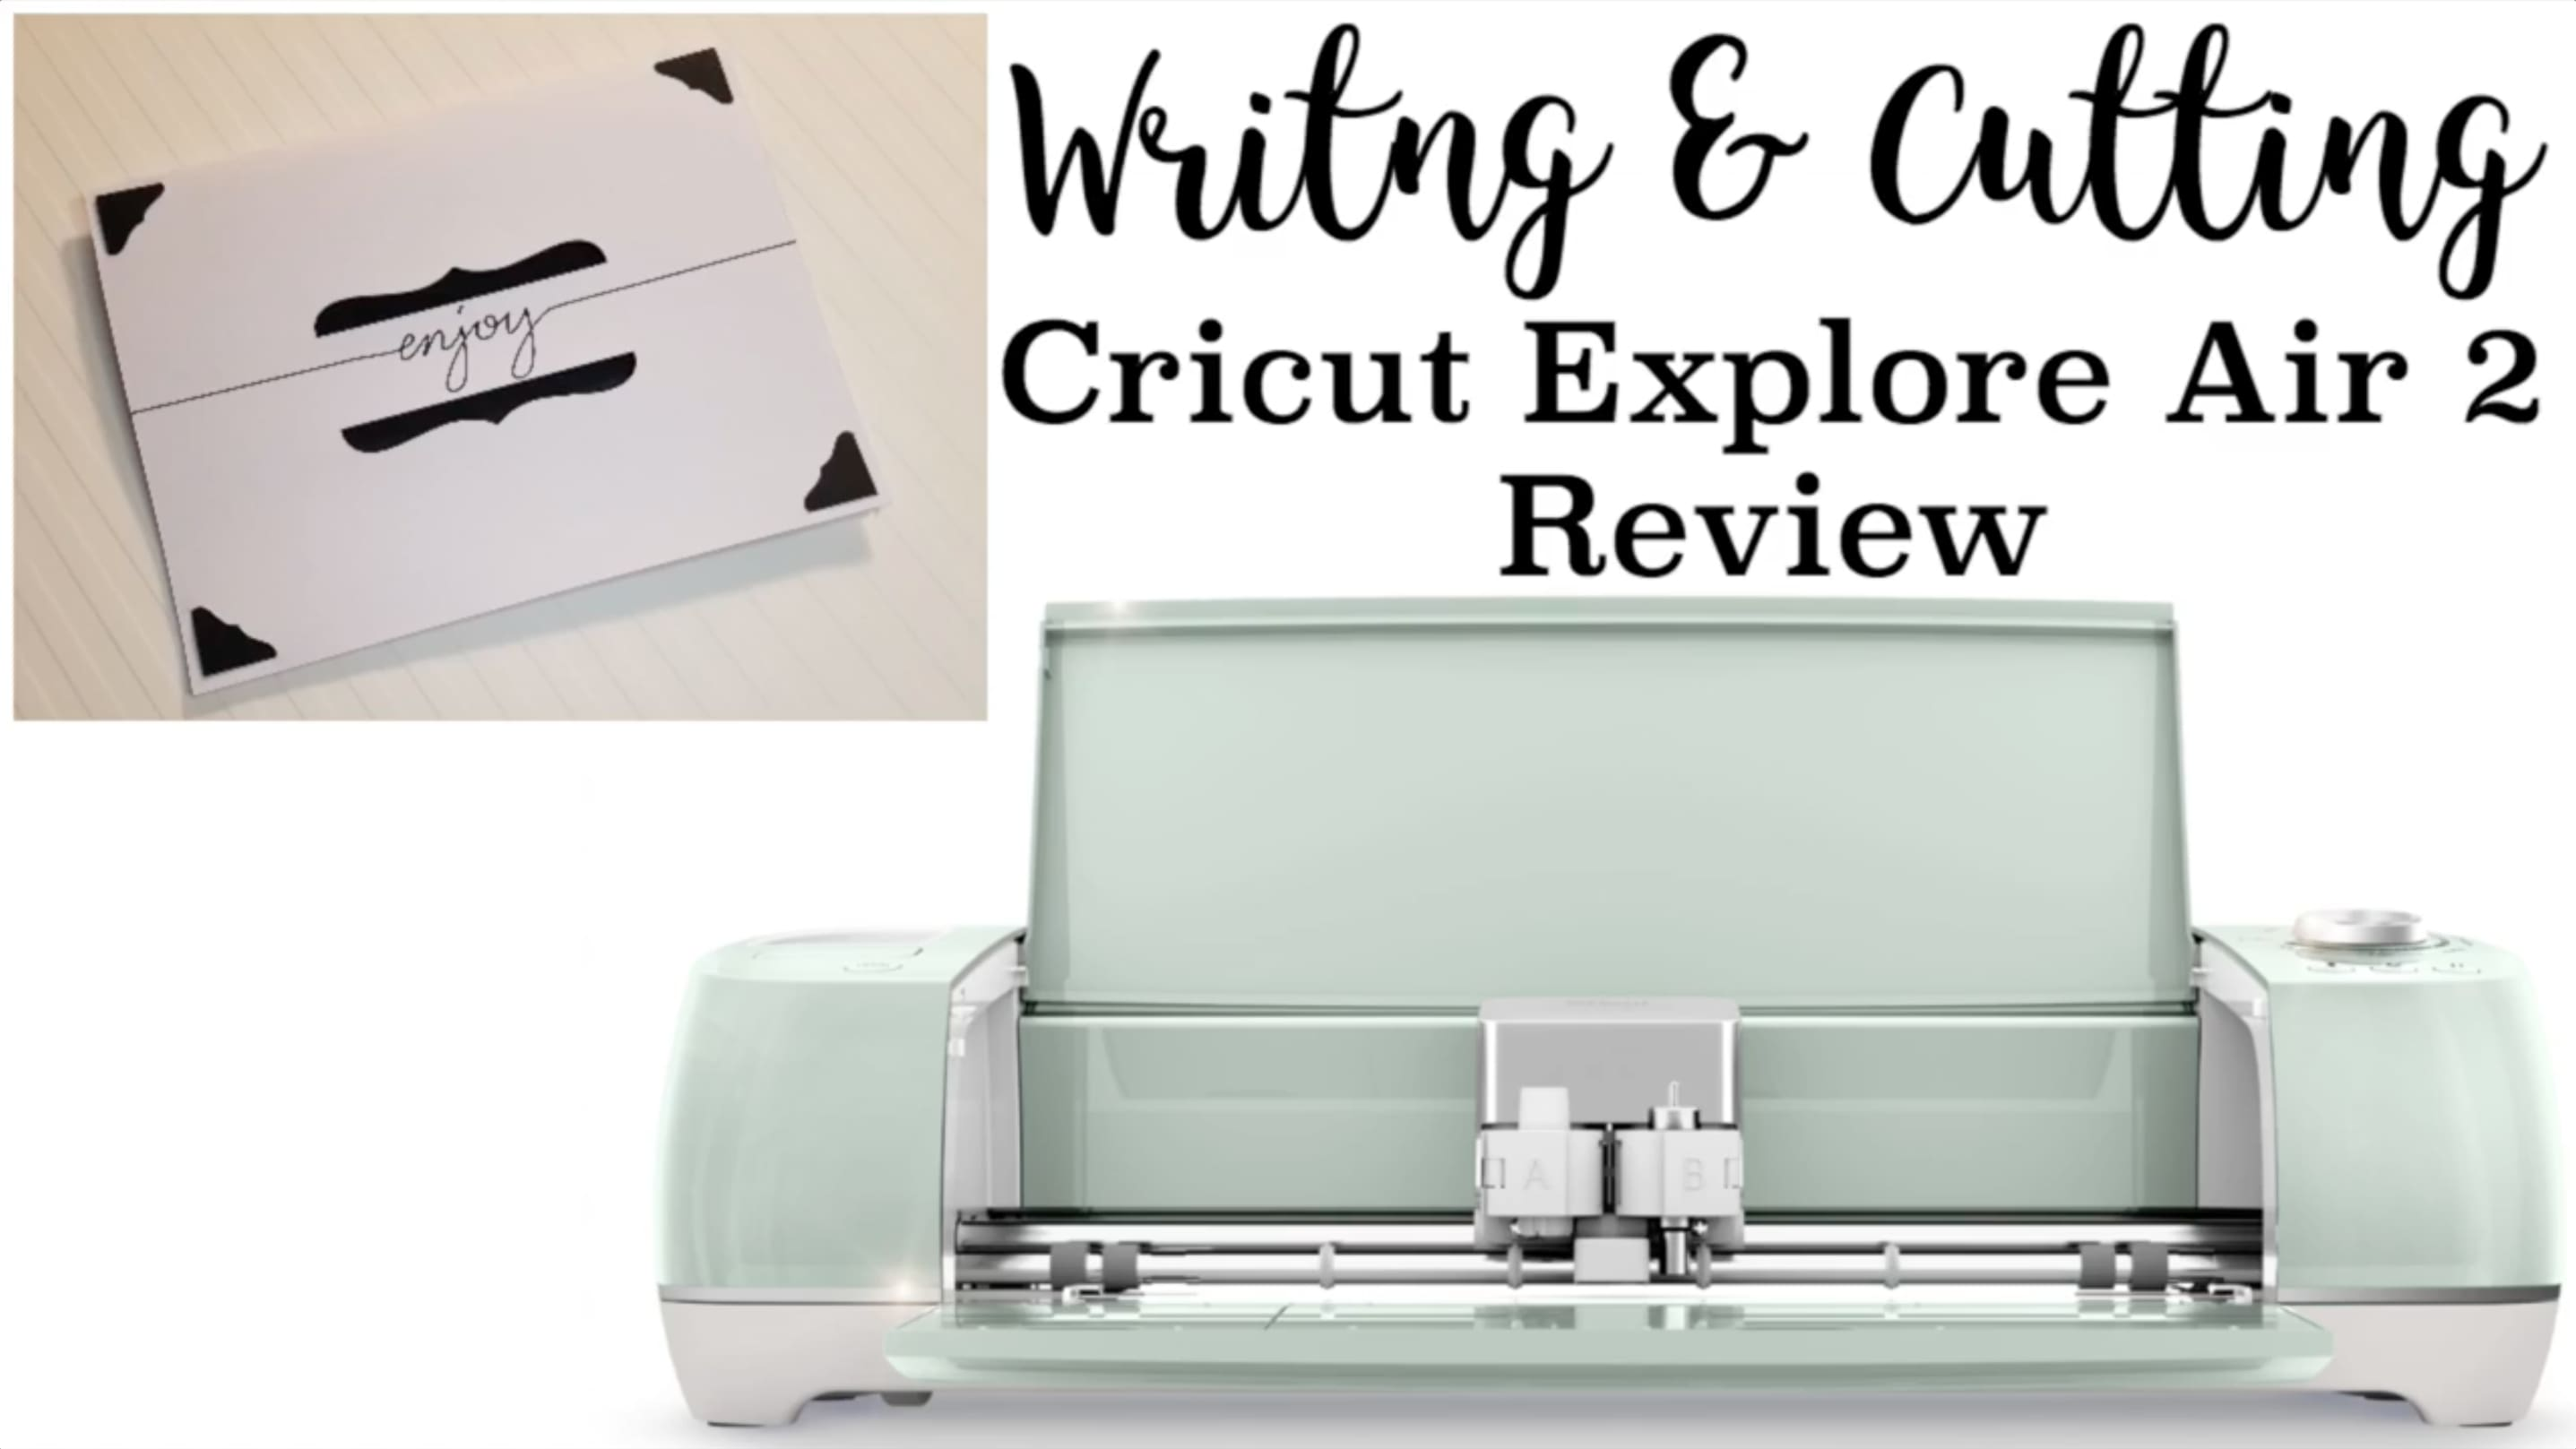 Cricut Explore Air 2 Review Read This Before Spending Your Money Got My Circuit Personal Electronic Cutter Machine A Year Ago For